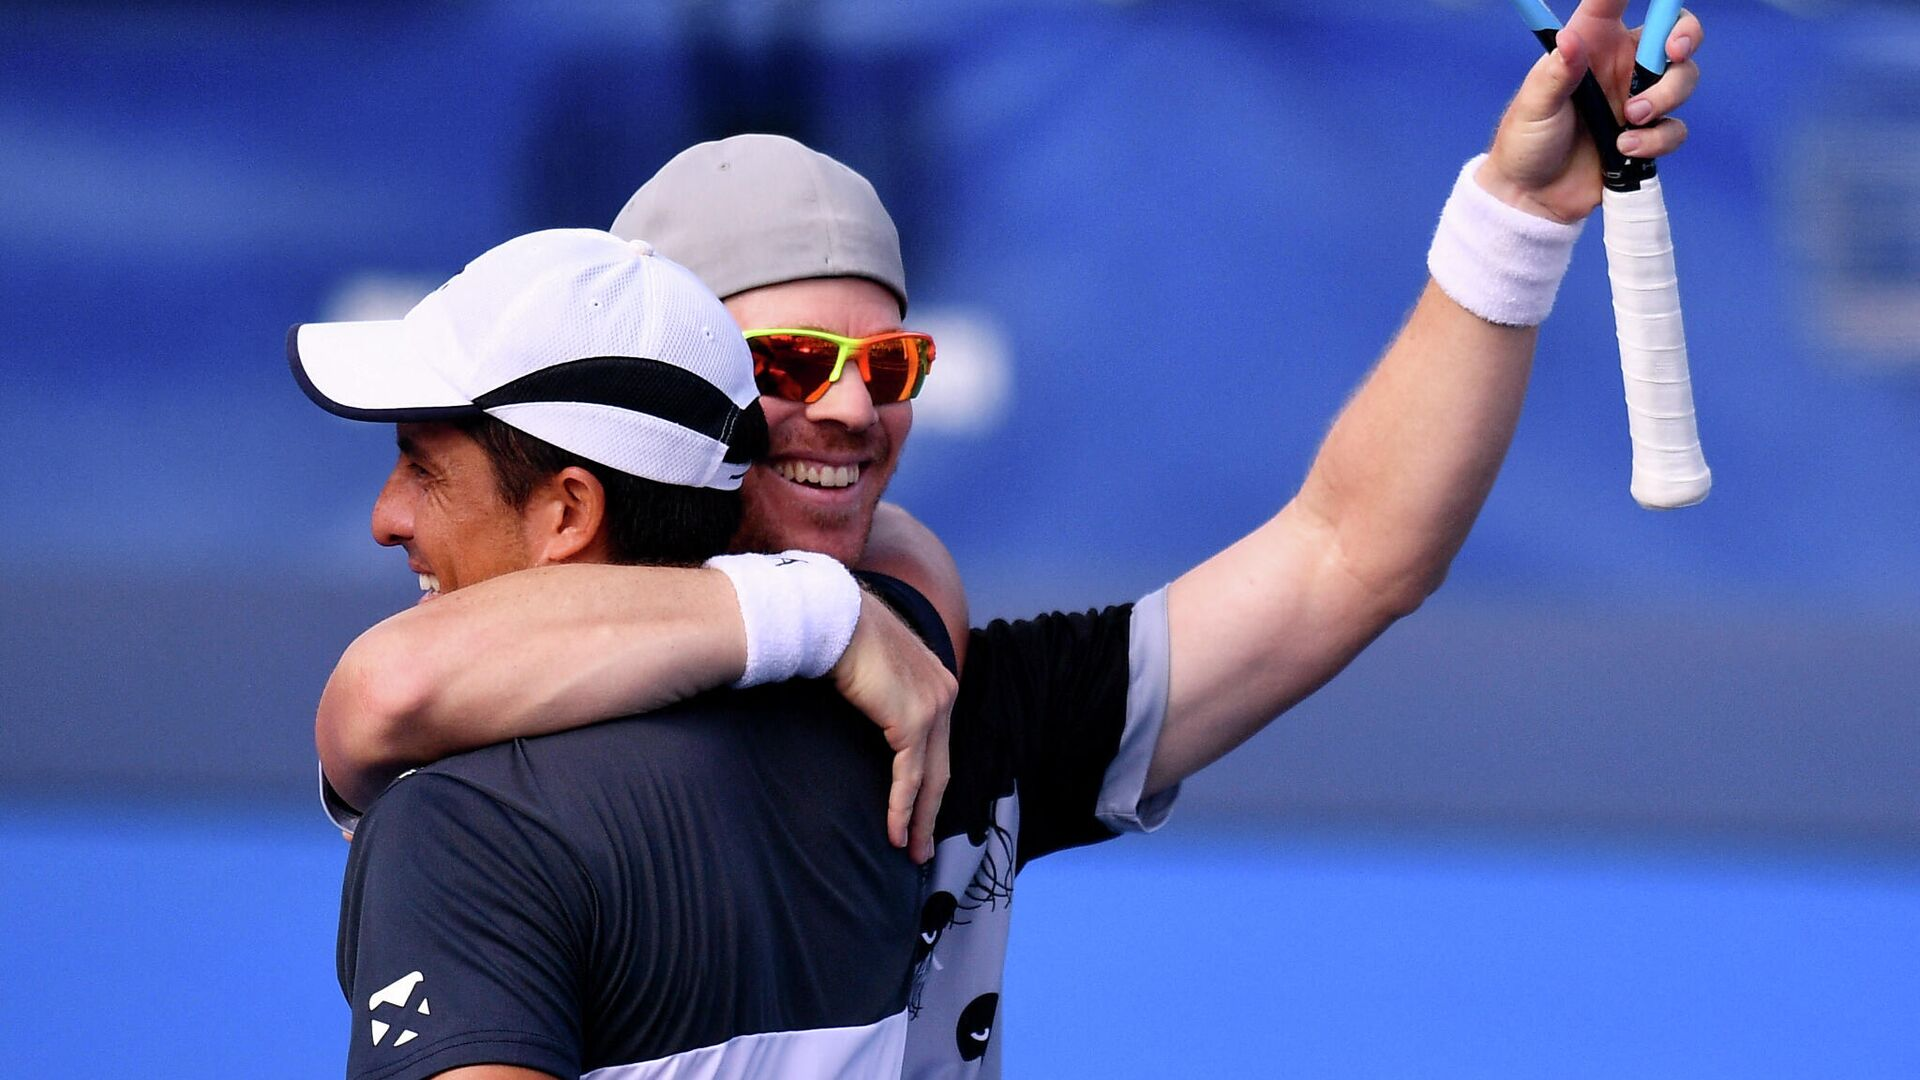 DELRAY BEACH, FLORIDA - JANUARY 13: Ariel Behar of Uruguay and Gonzalo Escobar of Ecuador celebrate after winning against brothers Ryan and Christian Harrison during the Doubles Finals of the Delray Beach Open by Vitacost.com at Delray Beach Tennis Center on January 13, 2021 in Delray Beach, Florida.   Mark Brown/Getty Images/AFP (Photo by Mark Brown / GETTY IMAGES NORTH AMERICA / Getty Images via AFP) - РИА Новости, 1920, 11.04.2021